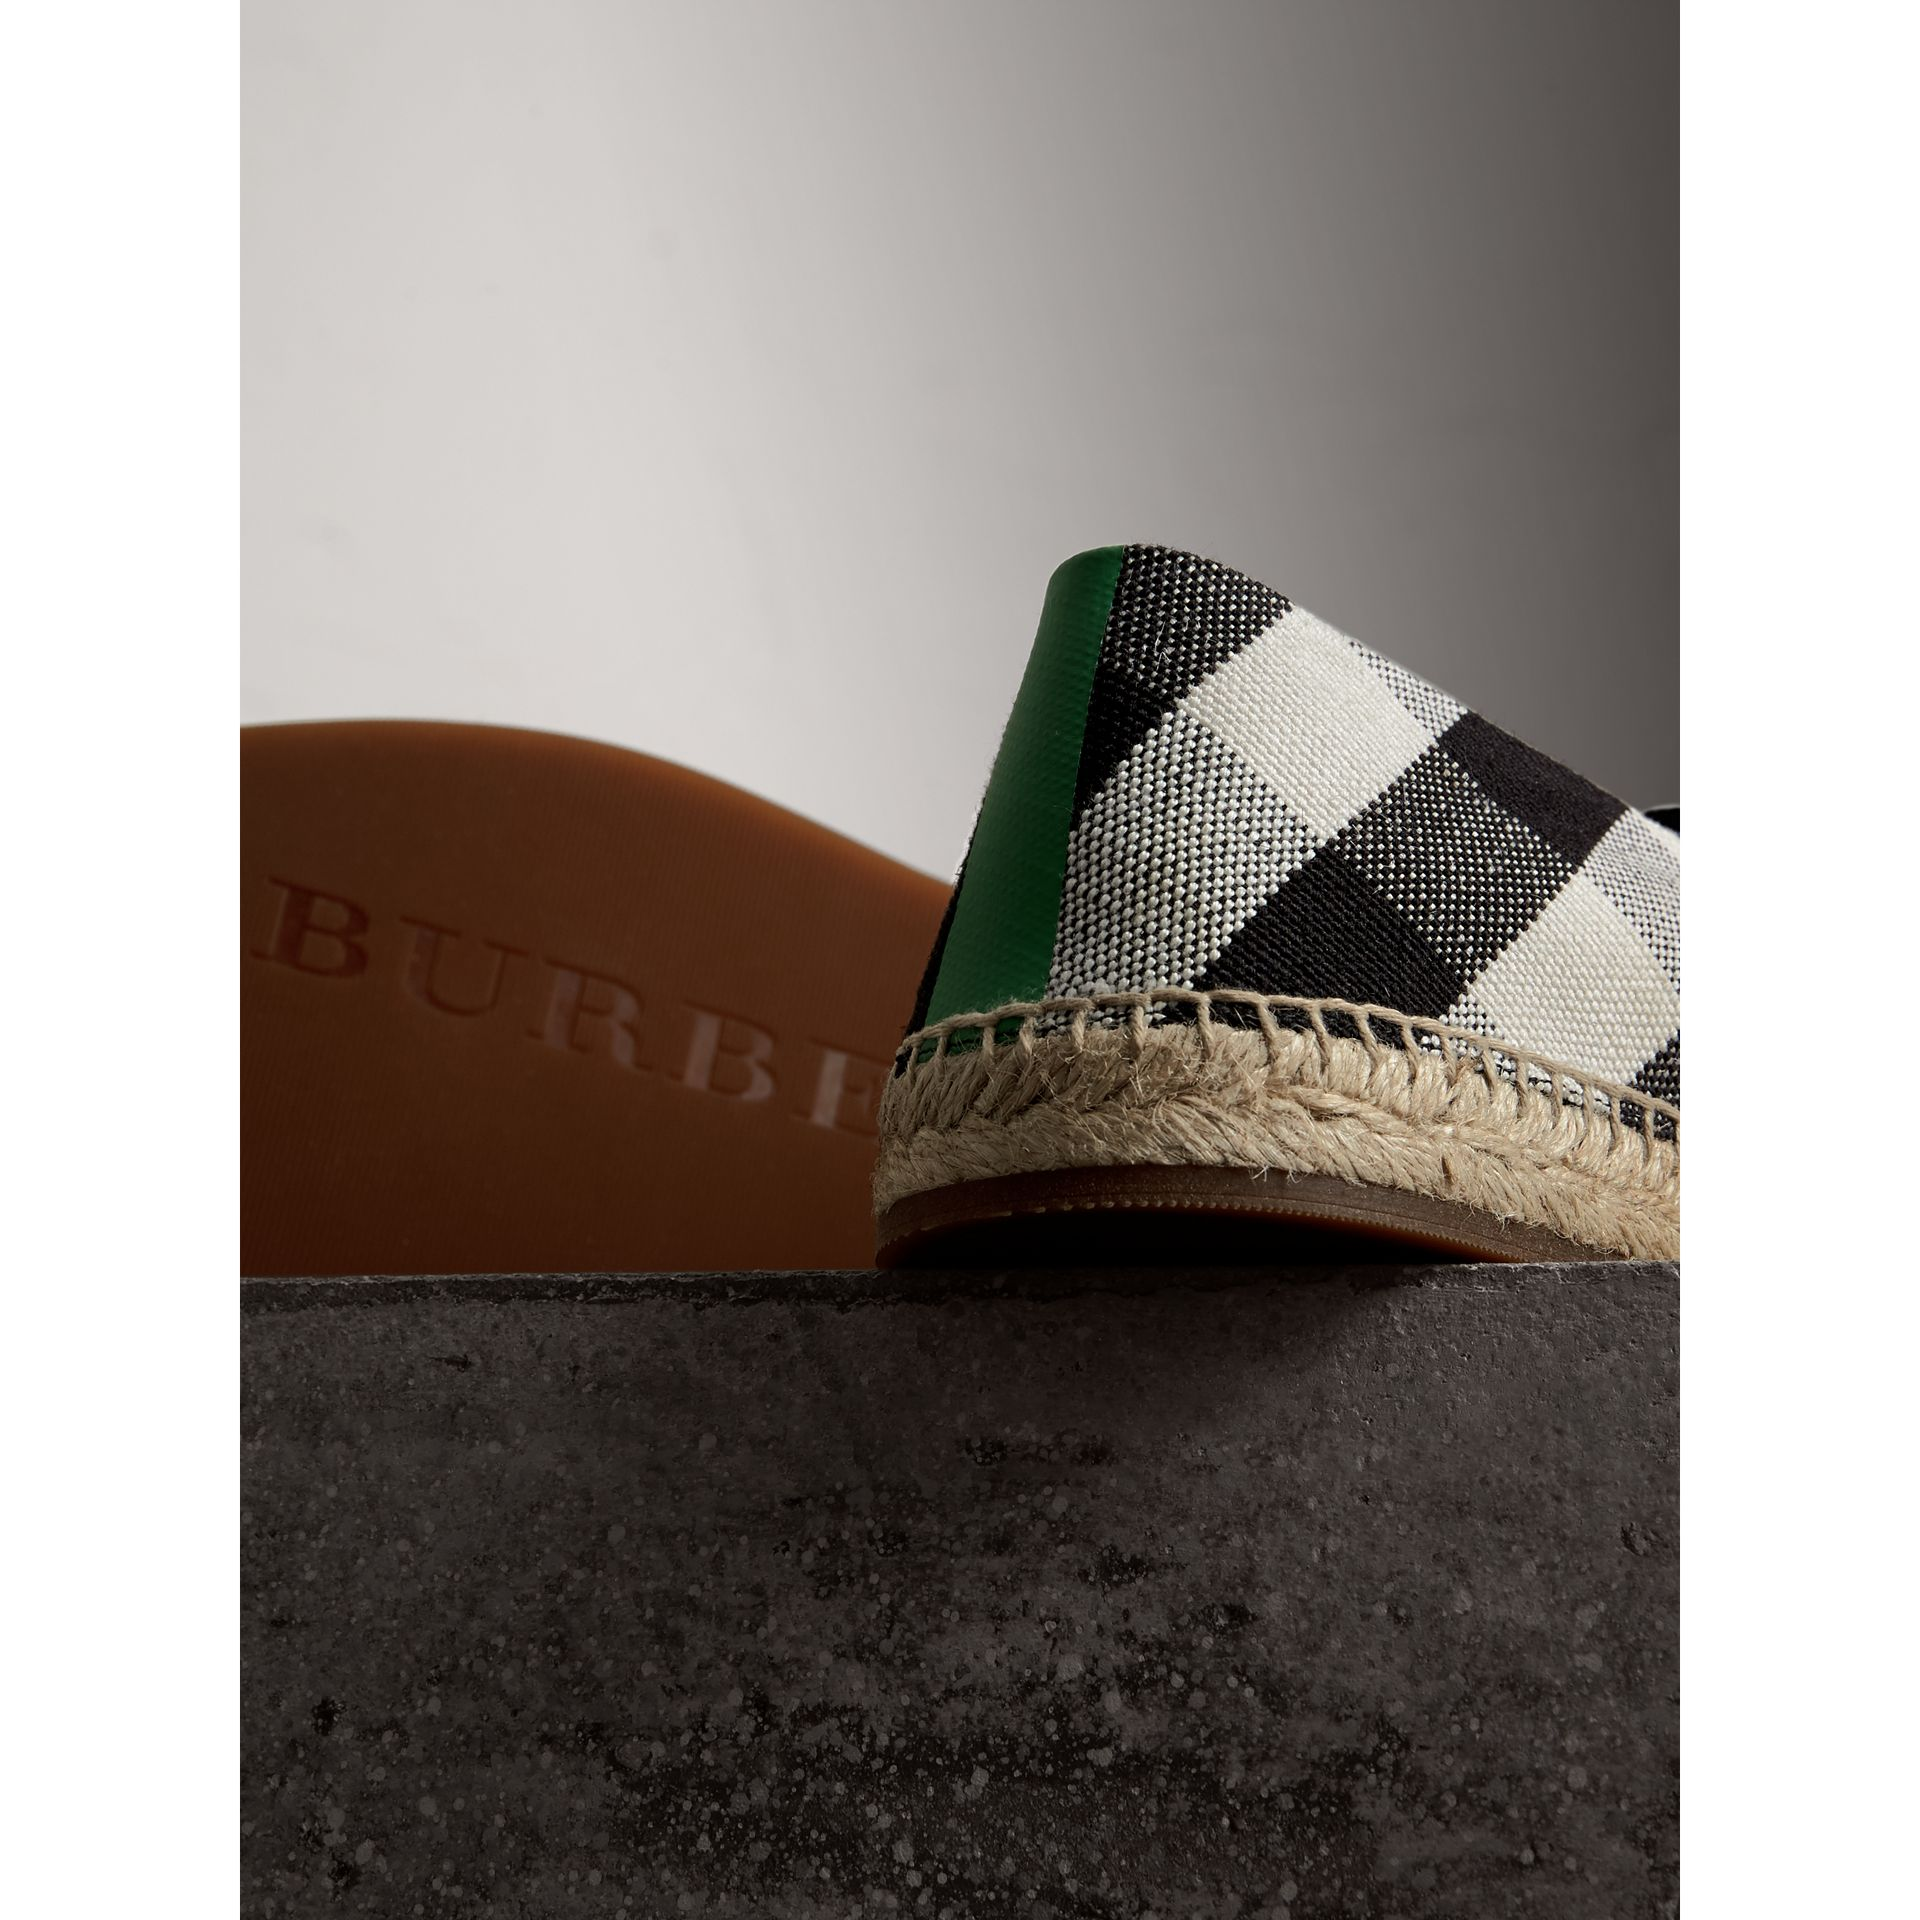 Check Cotton Canvas Seam-sealed Espadrilles in Black - Men | Burberry - gallery image 1